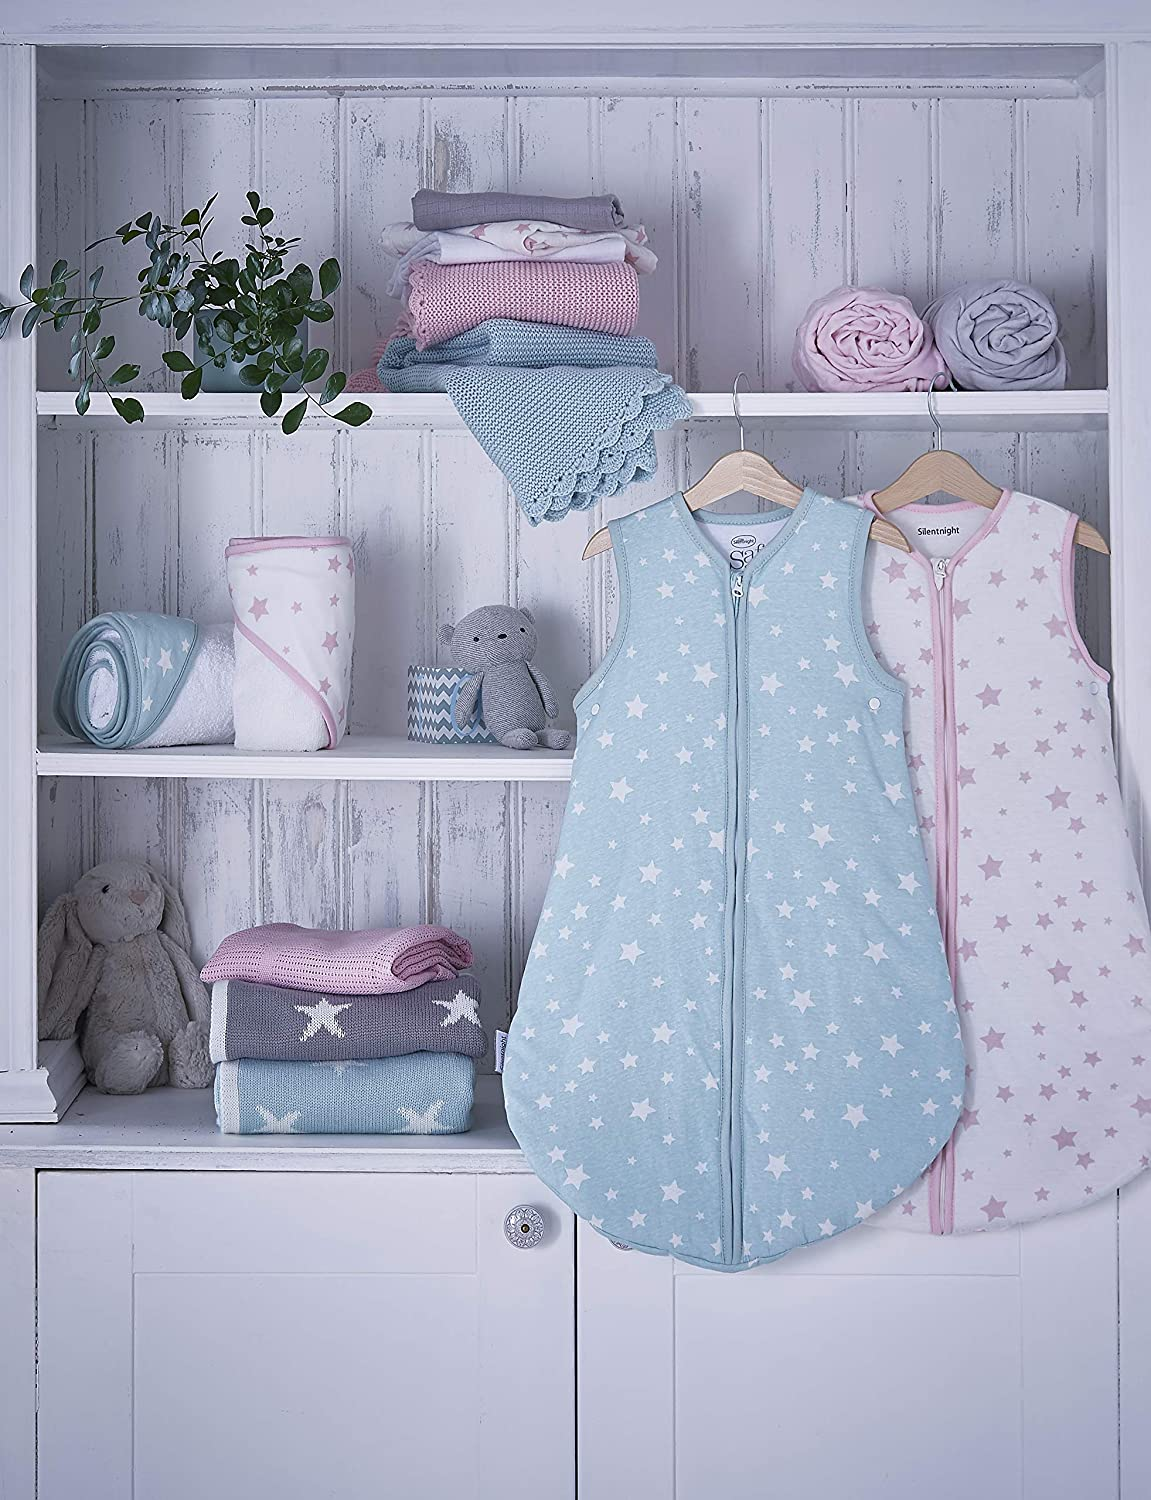 Silentnight Safe Nights Crib Fitted Sheets Pink Star Pack of 2